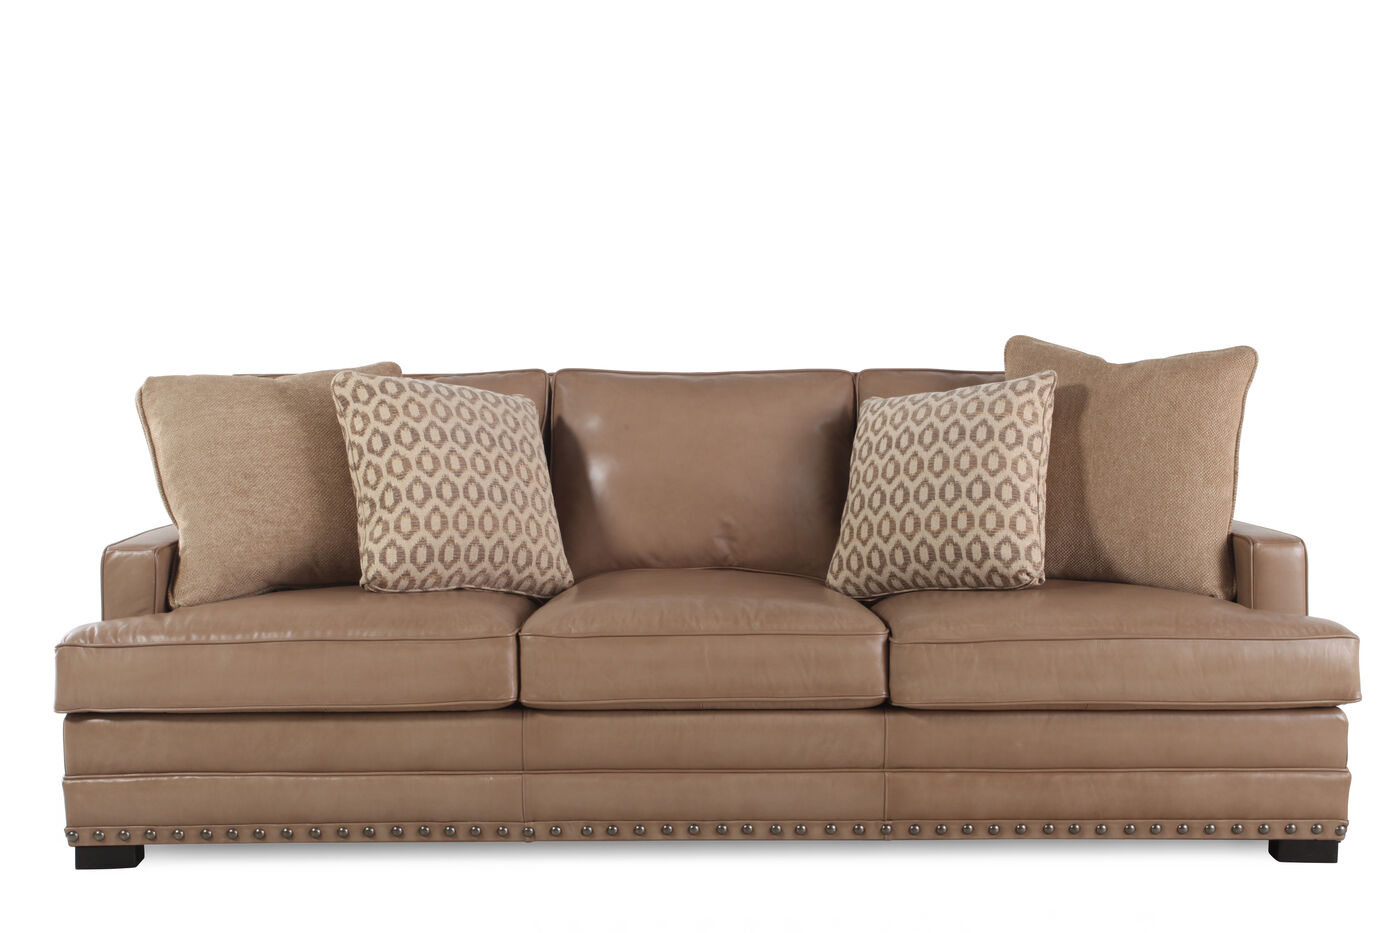 Nailhead Accented Leather 94 Sofa In Saddle Brown Mathis Brothers Furniture